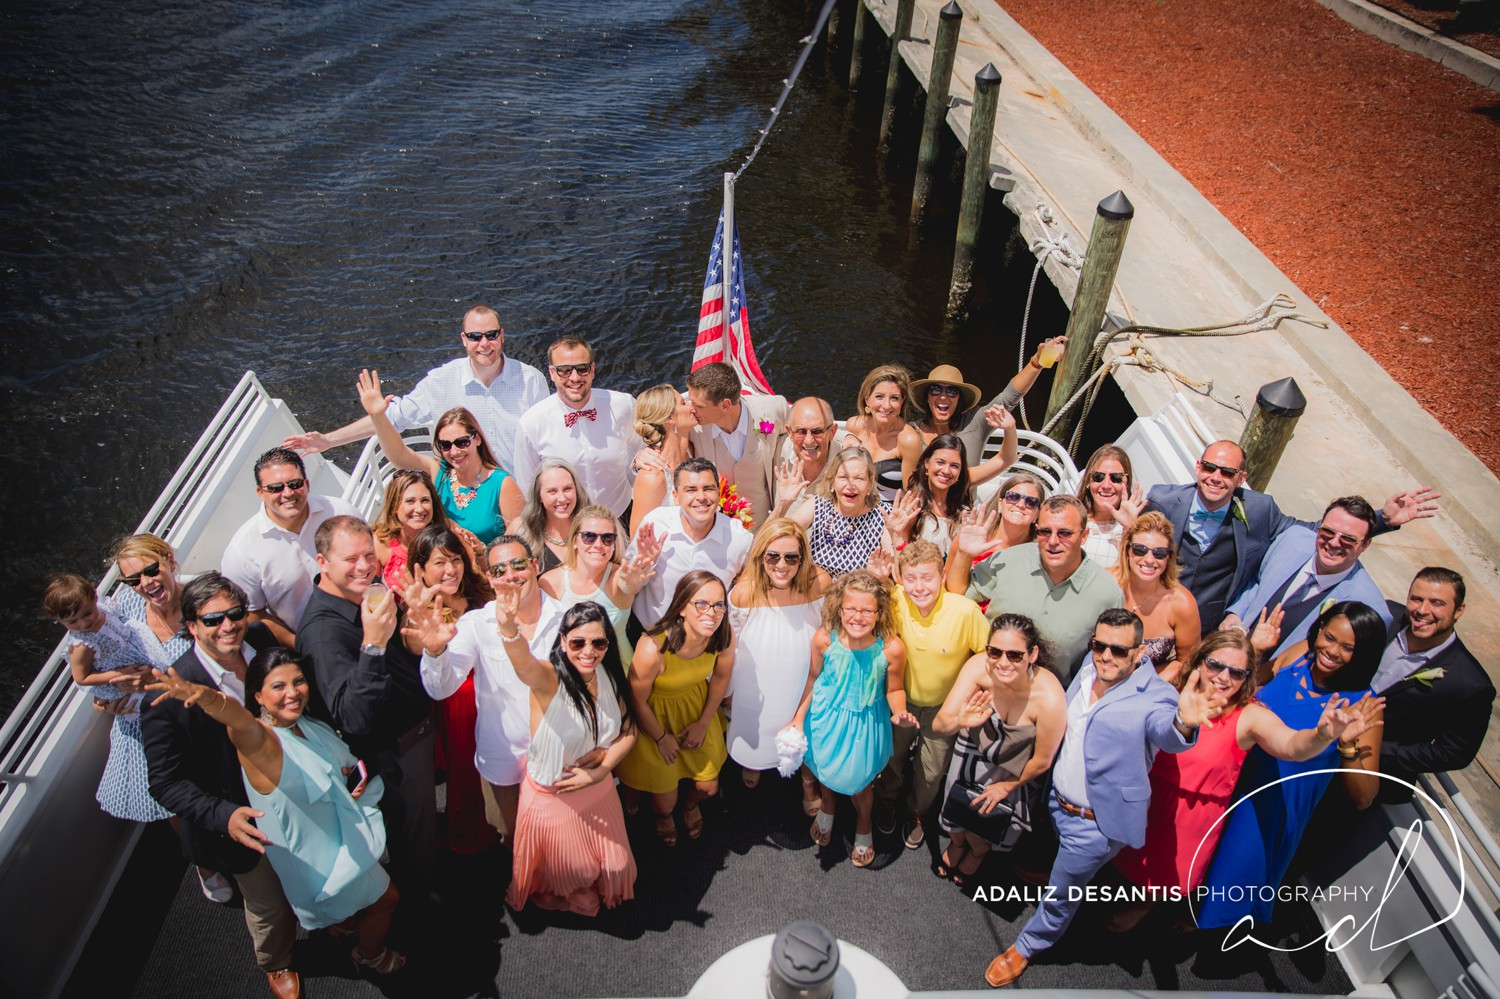 Sun Dream Yacht Charters Destination Wedding Fort Lauderdale FL 18.jpg